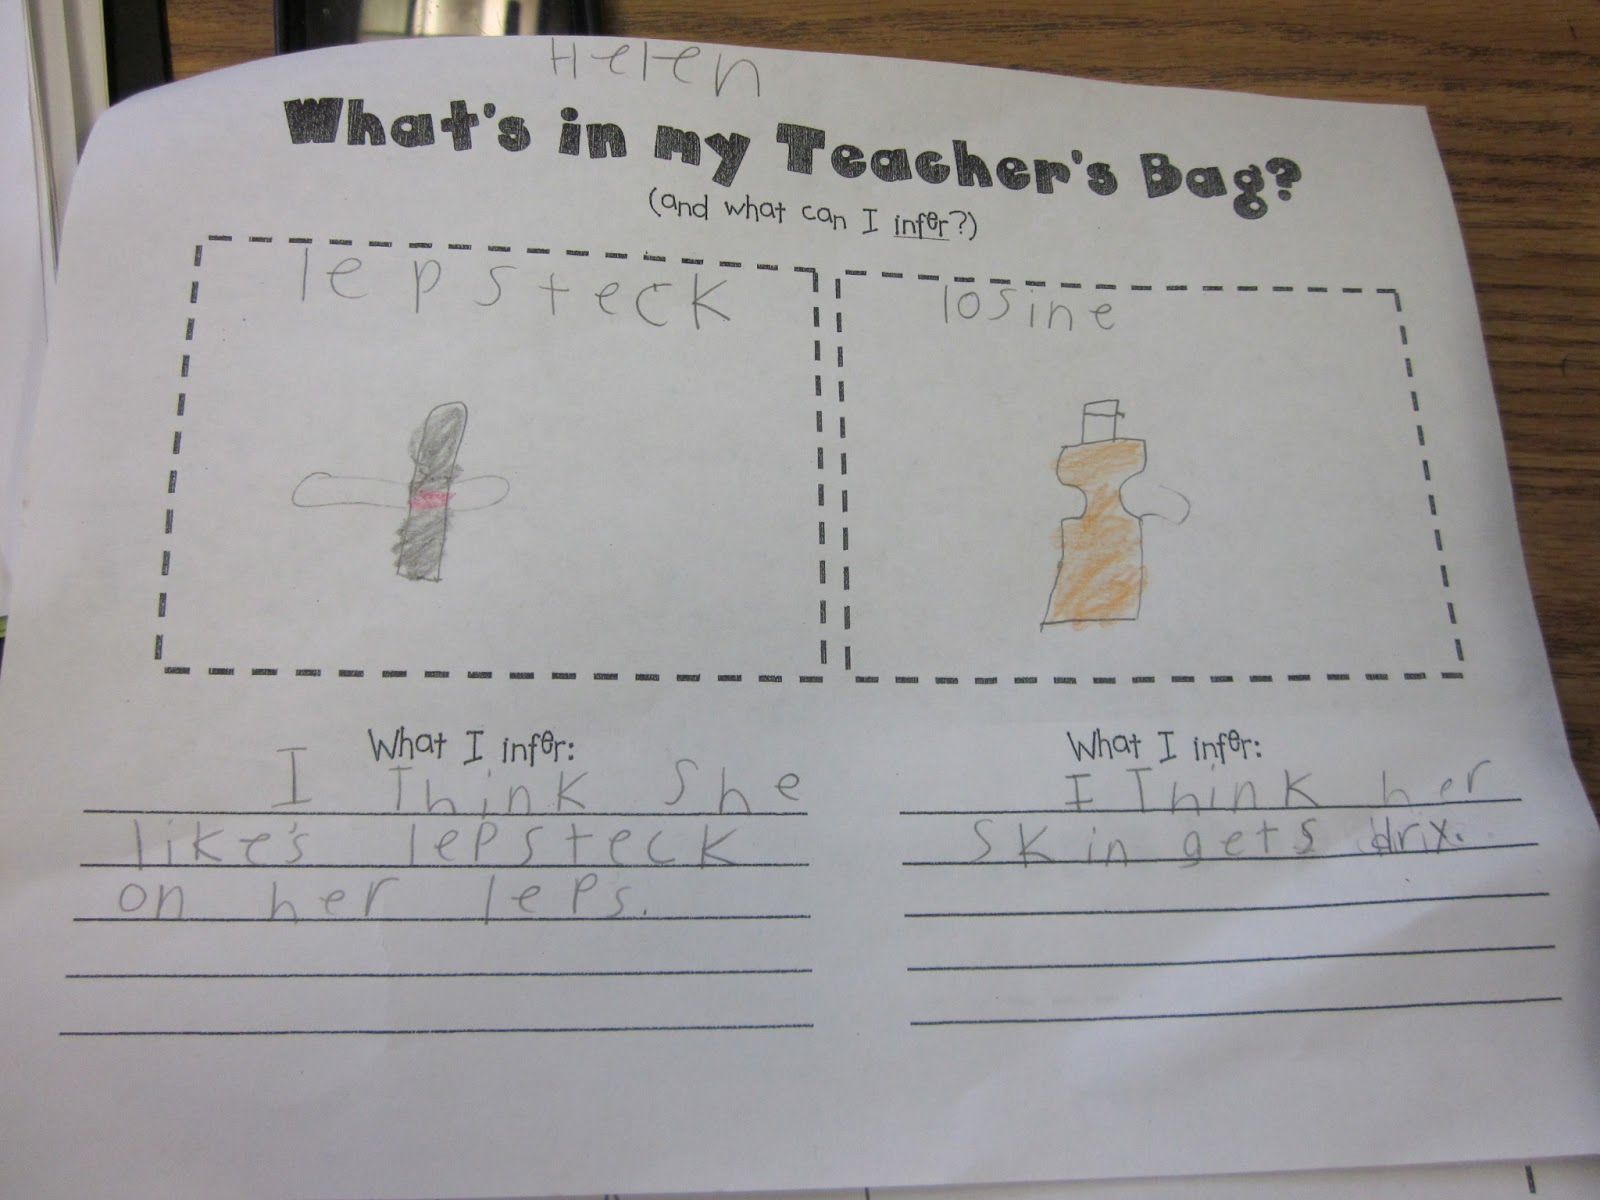 inference worksheets | Inferring our Schedule: Choice of one page ...